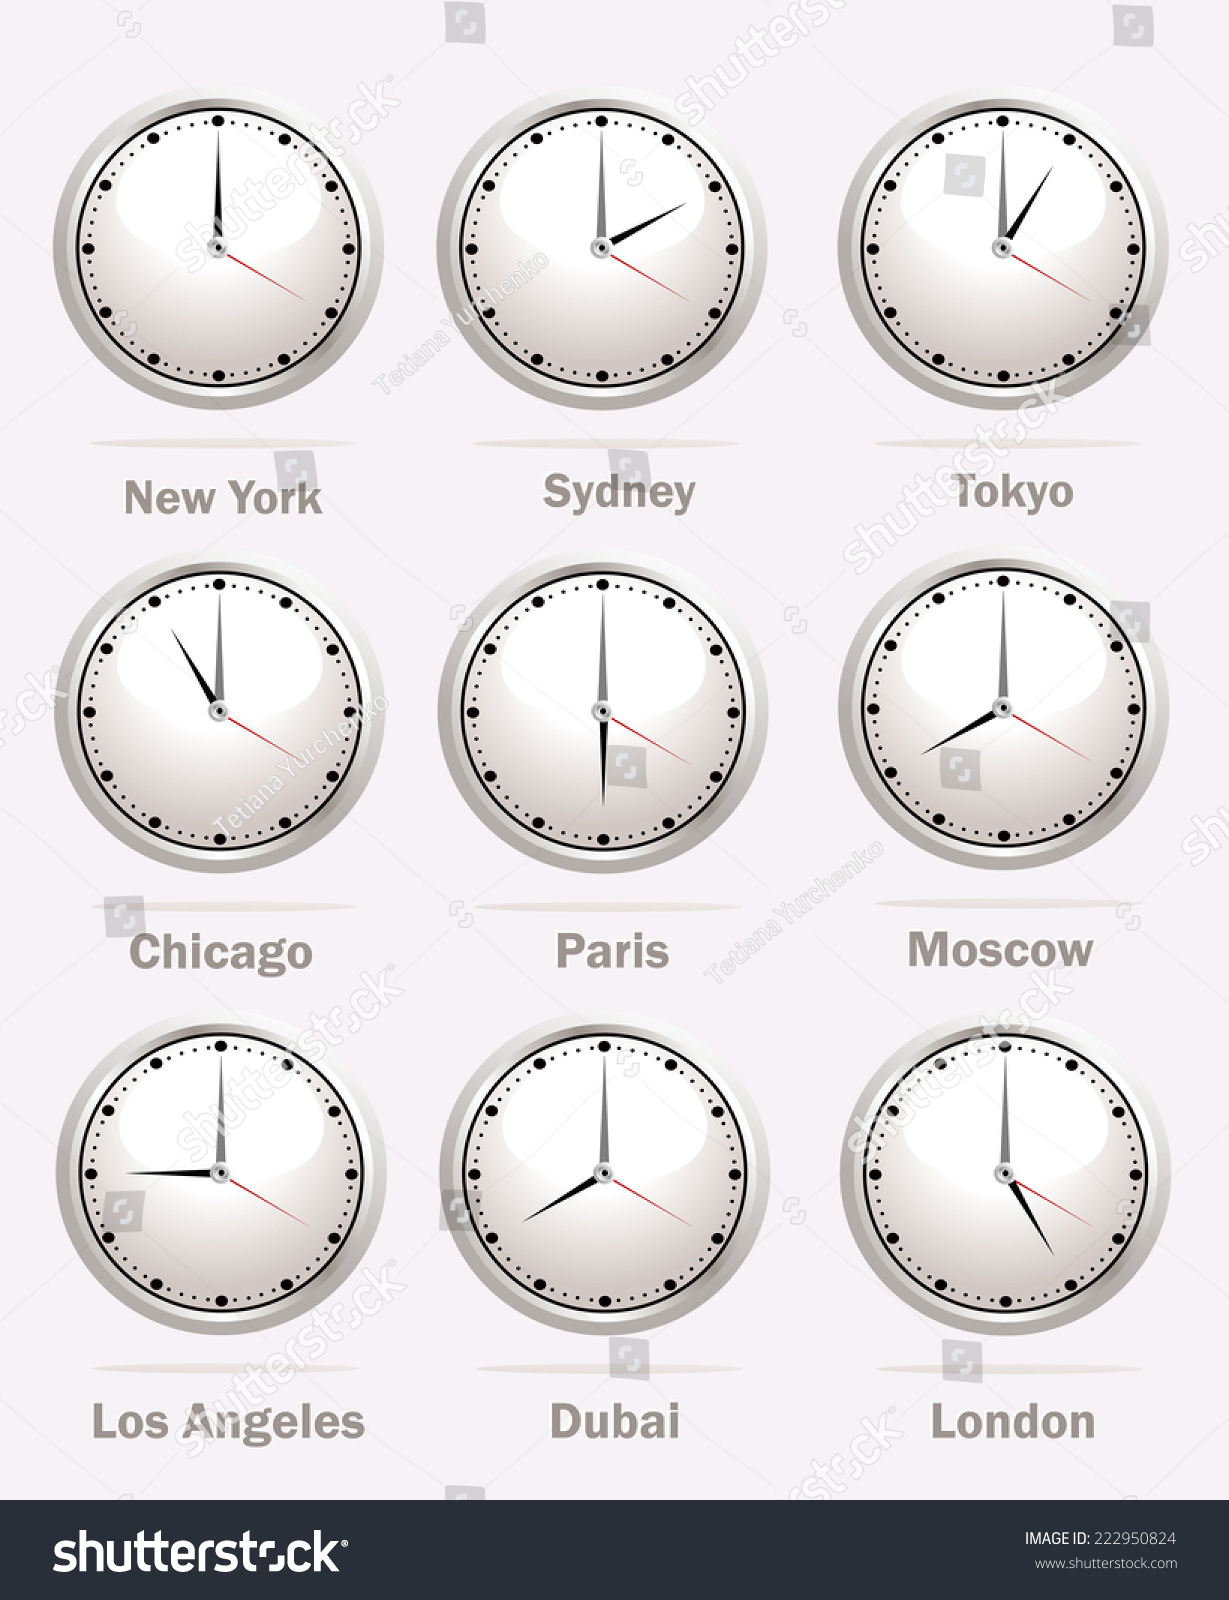 World clock time difference major cities stock illustration world clock time difference in major cities amipublicfo Choice Image